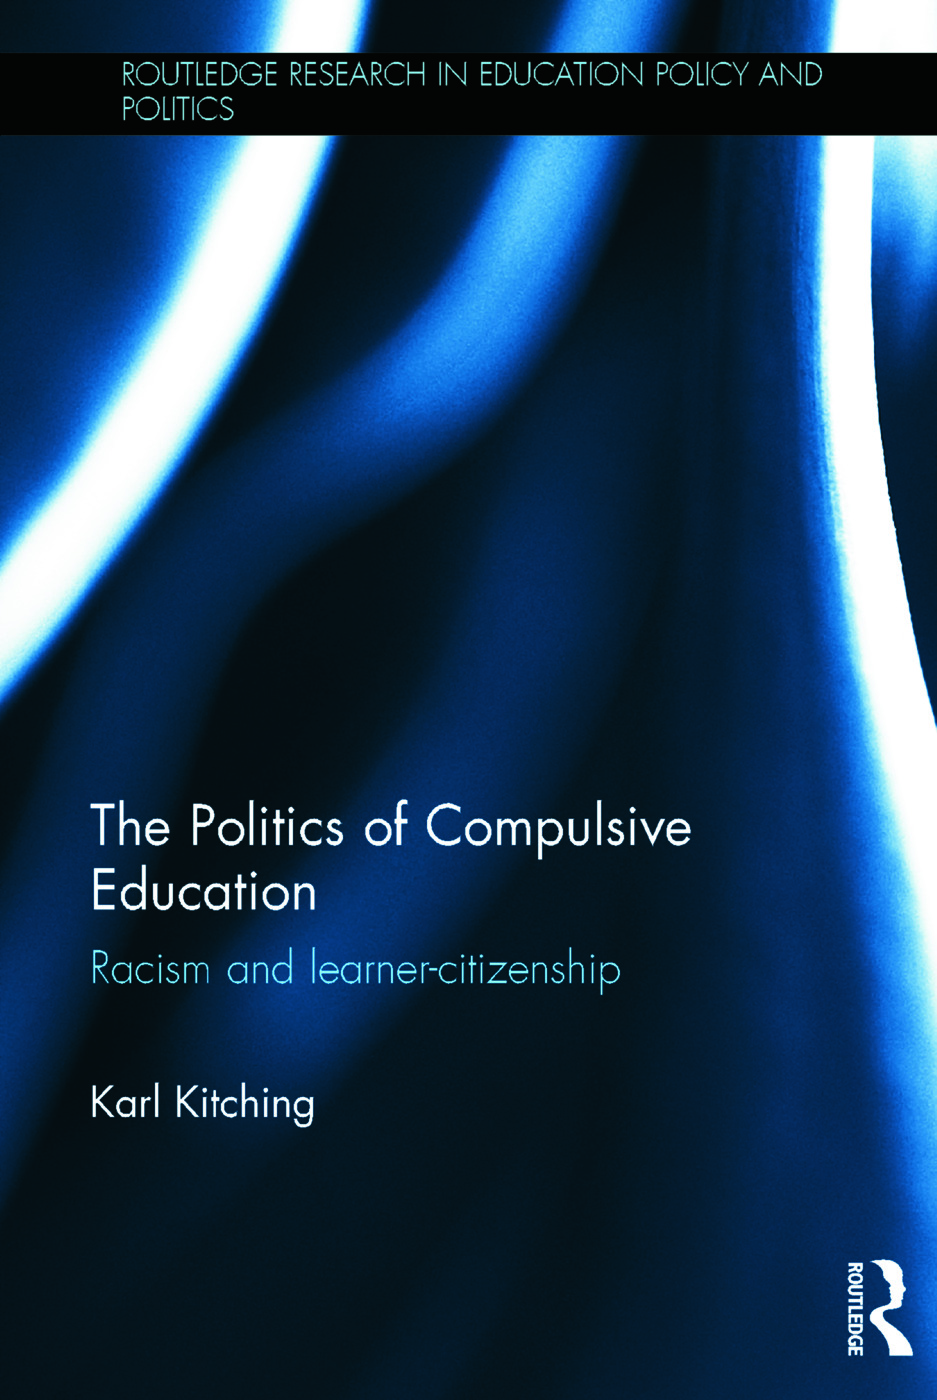 The Politics of Compulsive Education: Racism and learner-citizenship book cover